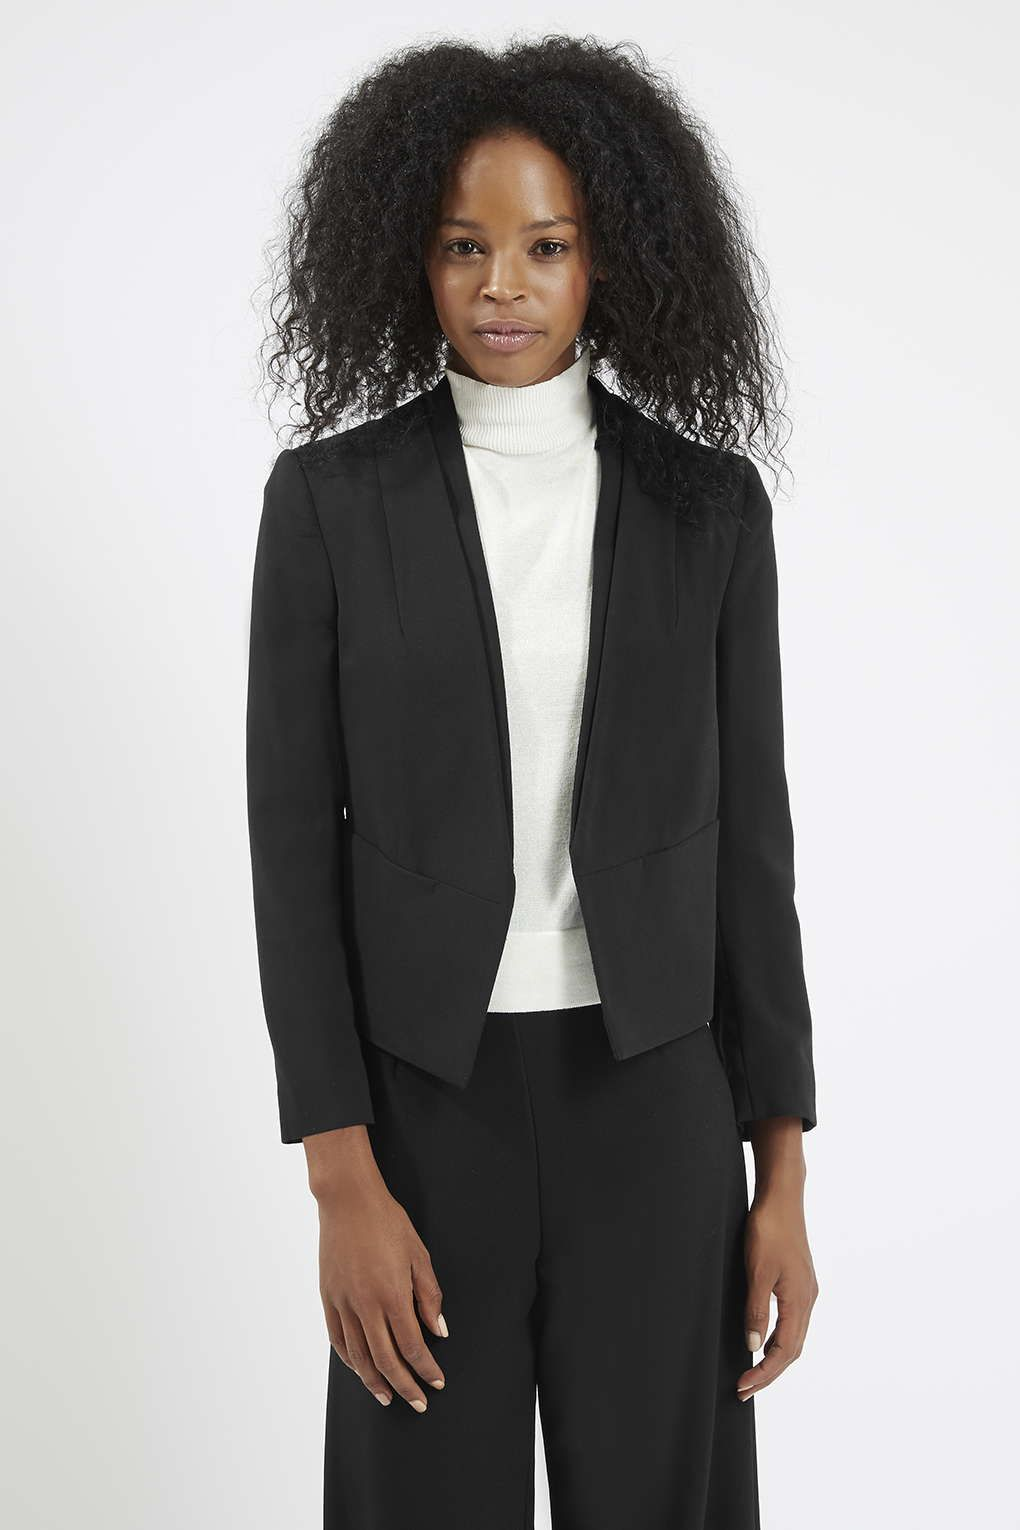 PETITE Tailored Blazer - New In This Week - New In - Topshop Europe